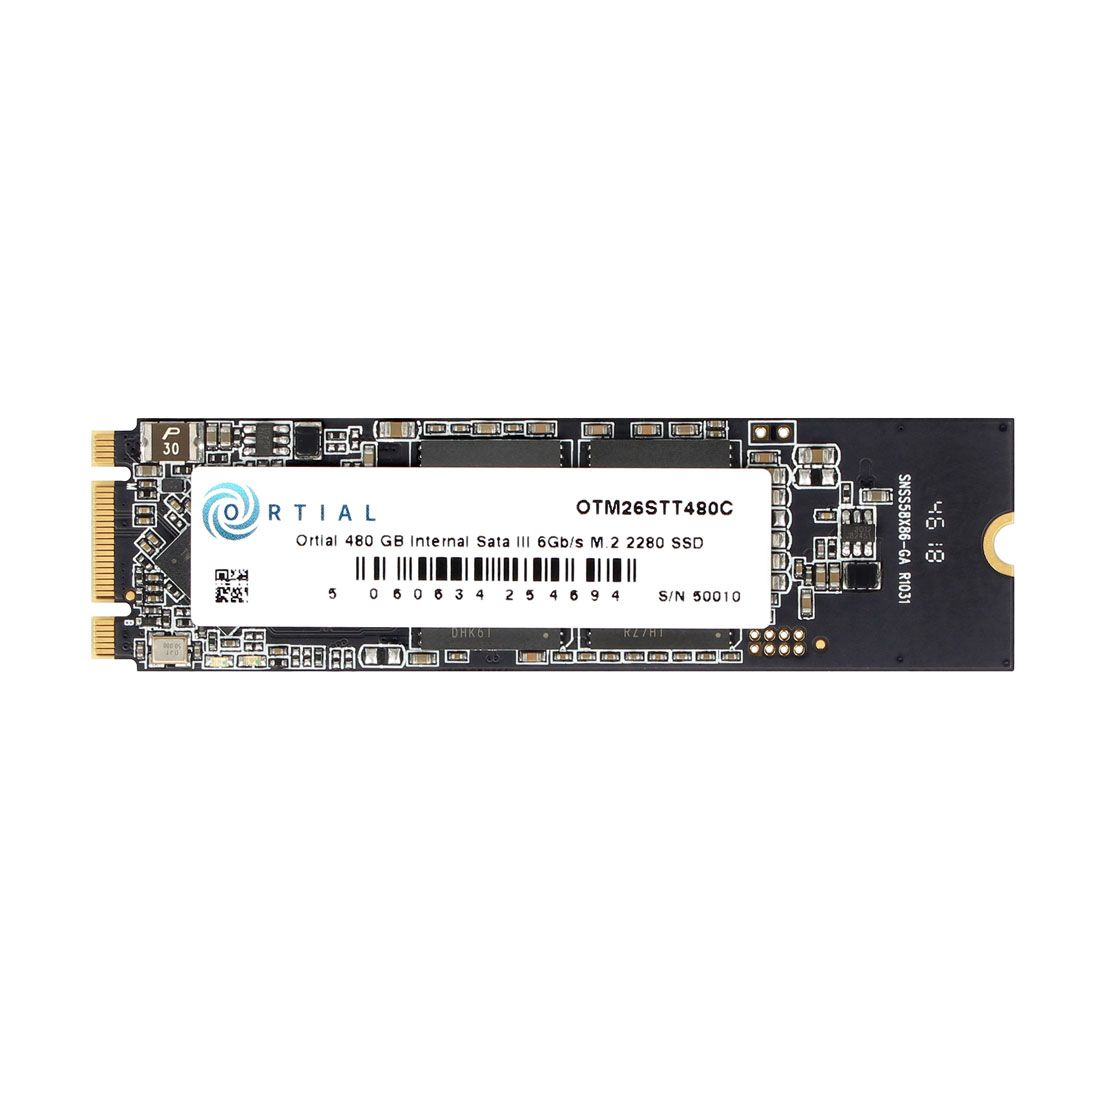 ORTIAL 480GB M.2 SSD